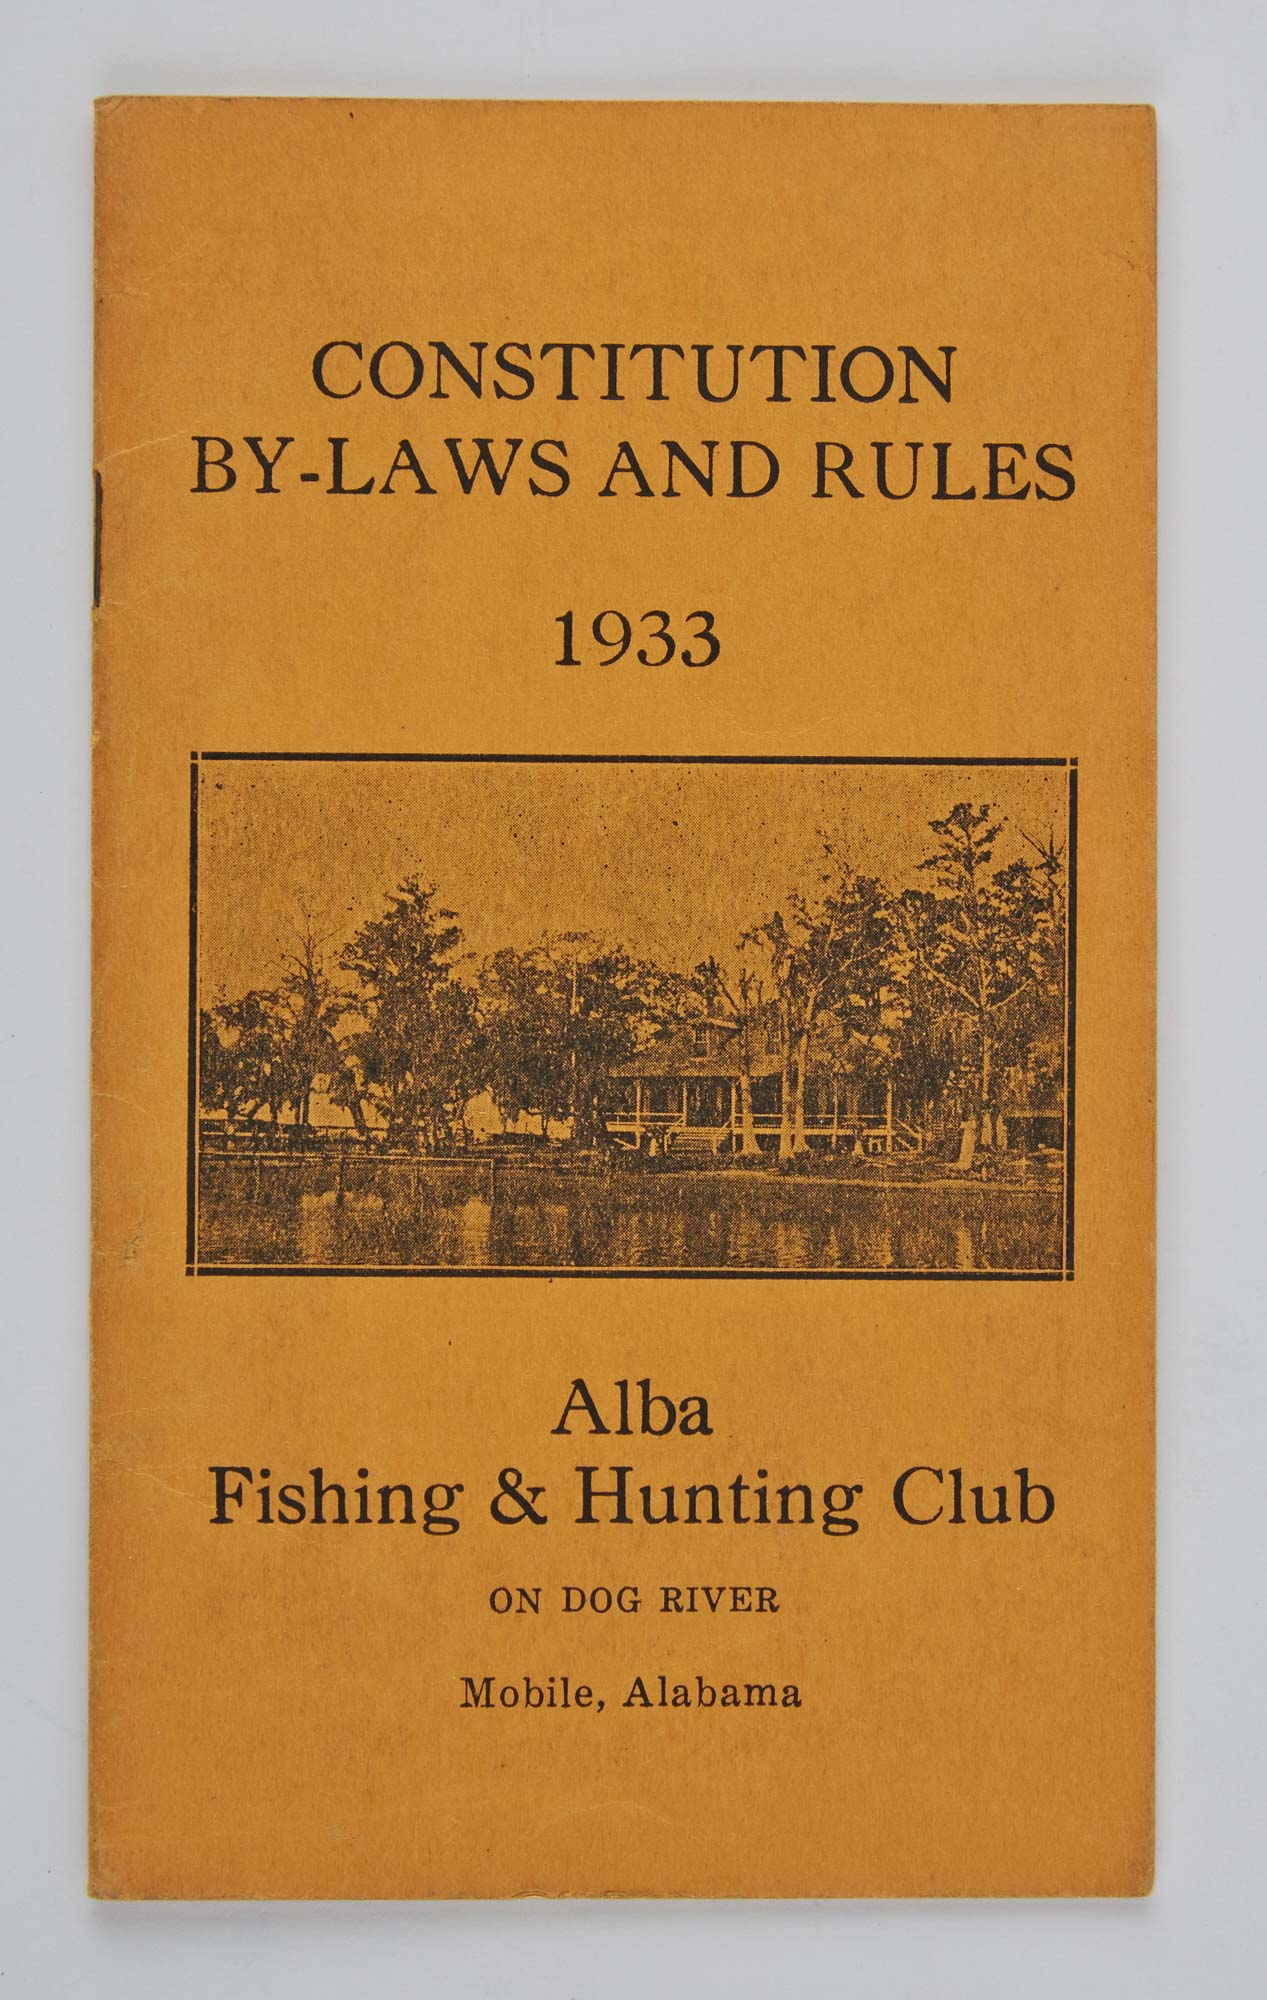 Lot image - [ANGLING CLUB]  Constitution, By-Laws and Rules of the Alba Fishing & Hunting Club. Adopted and Effective March 13, 1933.